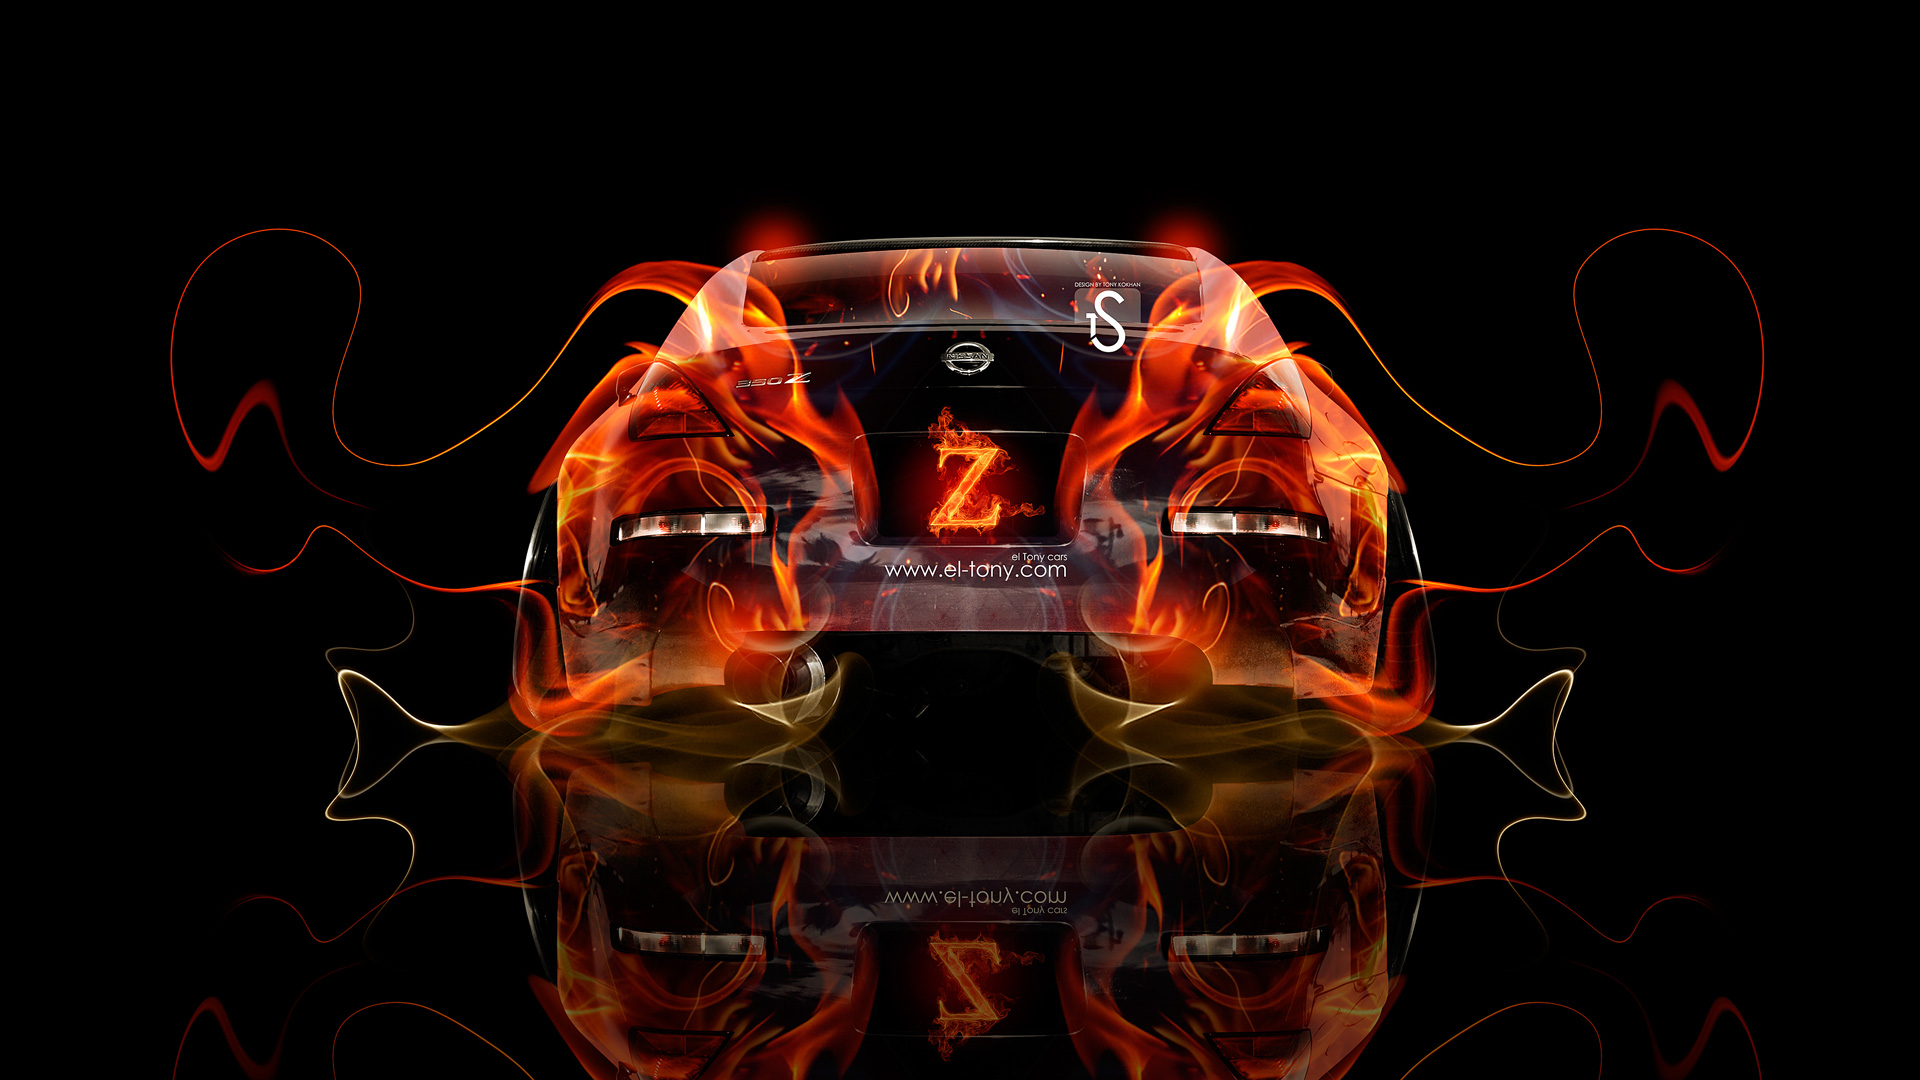 Awesome Nissan 350Z JDM Tuning Fire Abstract Car 2013